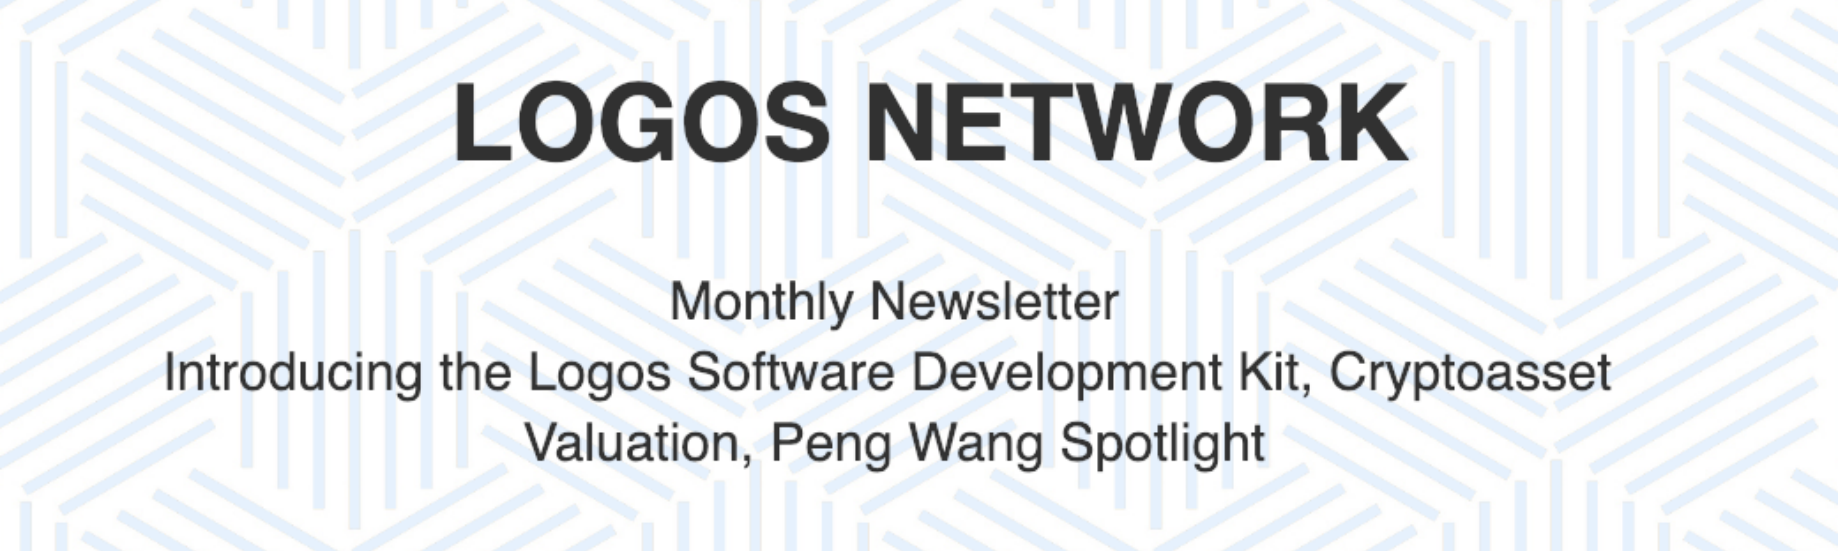 Monthly Newsletter #5: Introducing the Logos Software Development